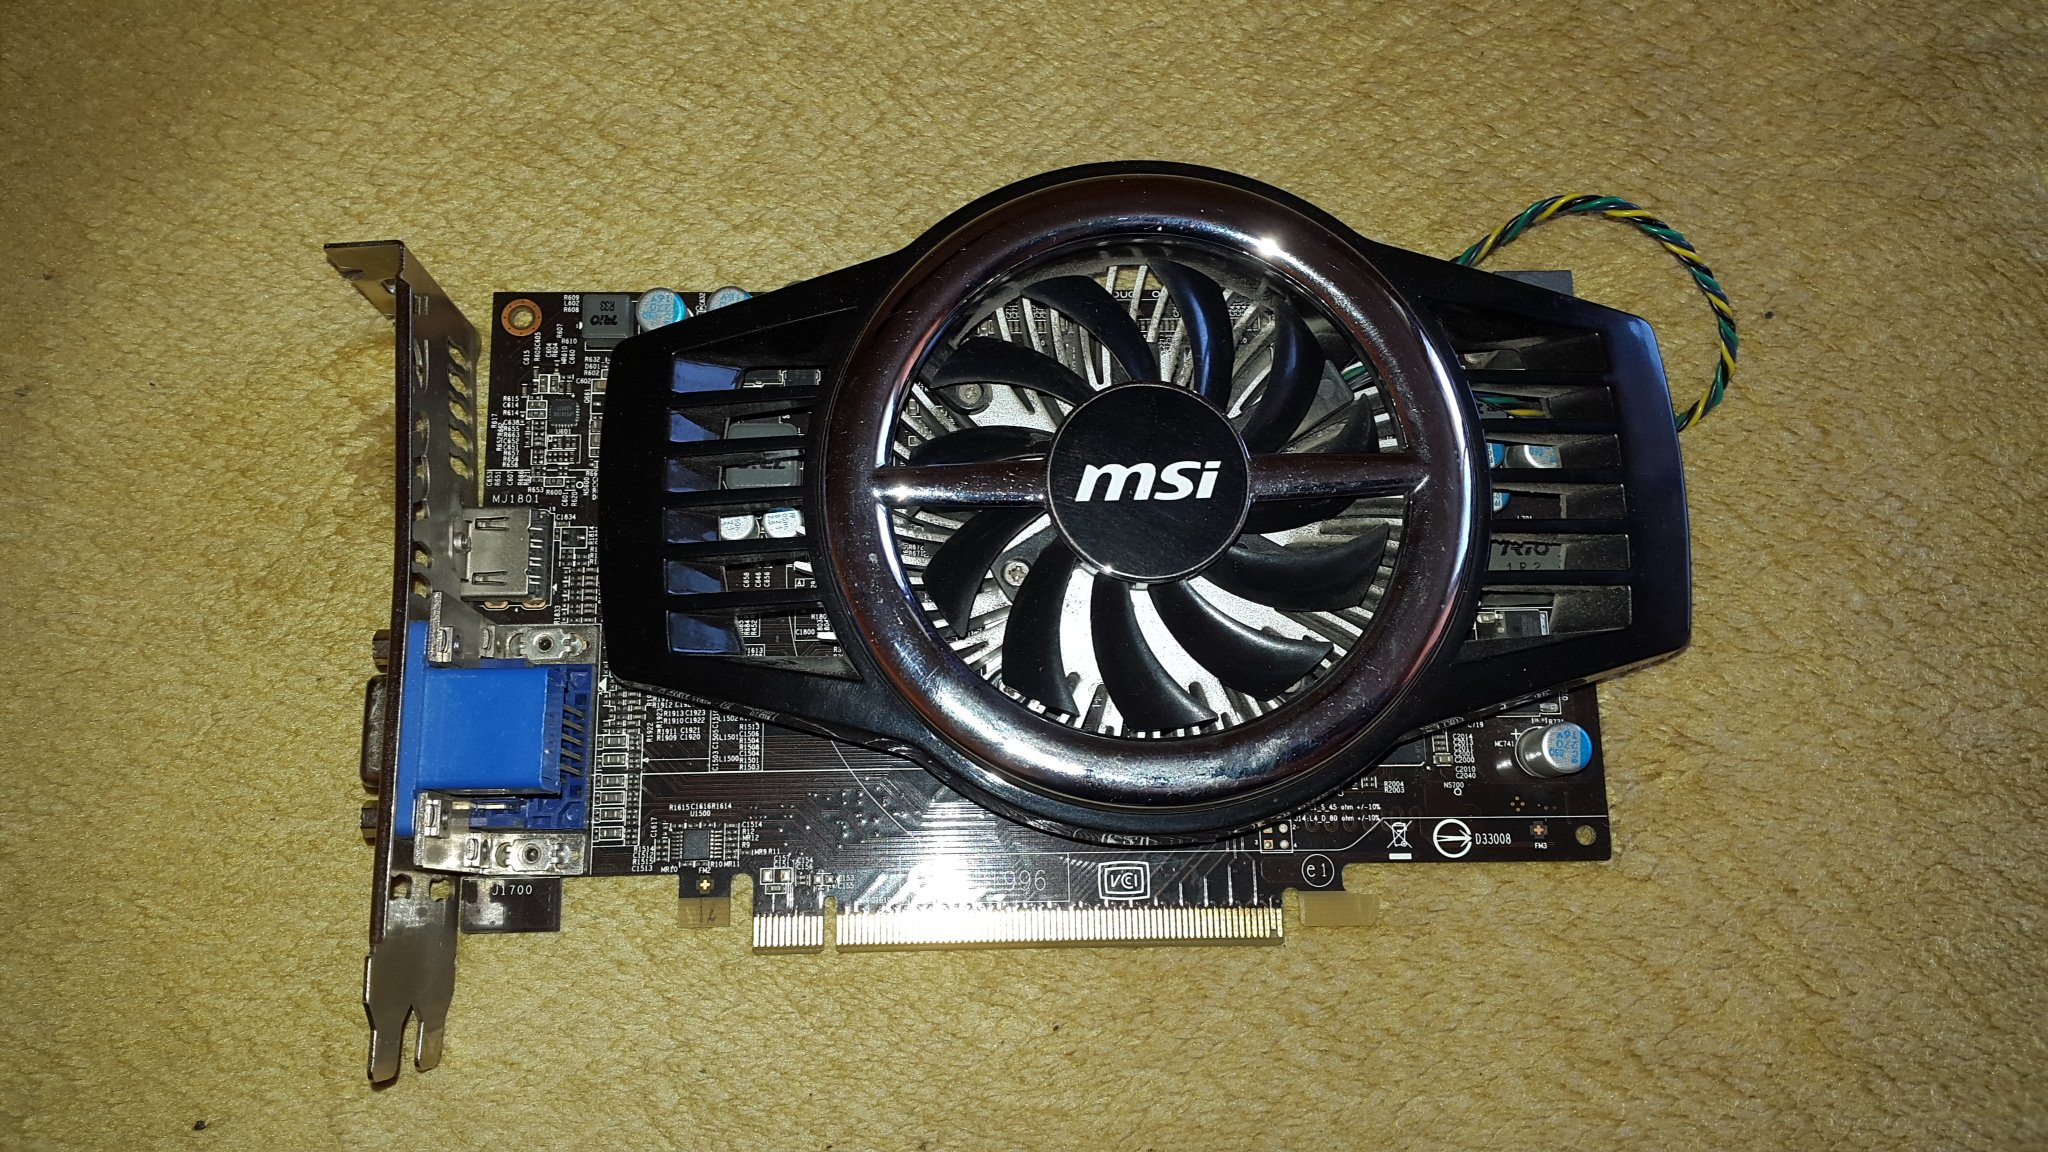 MSI R5750 WINDOWS VISTA DRIVER